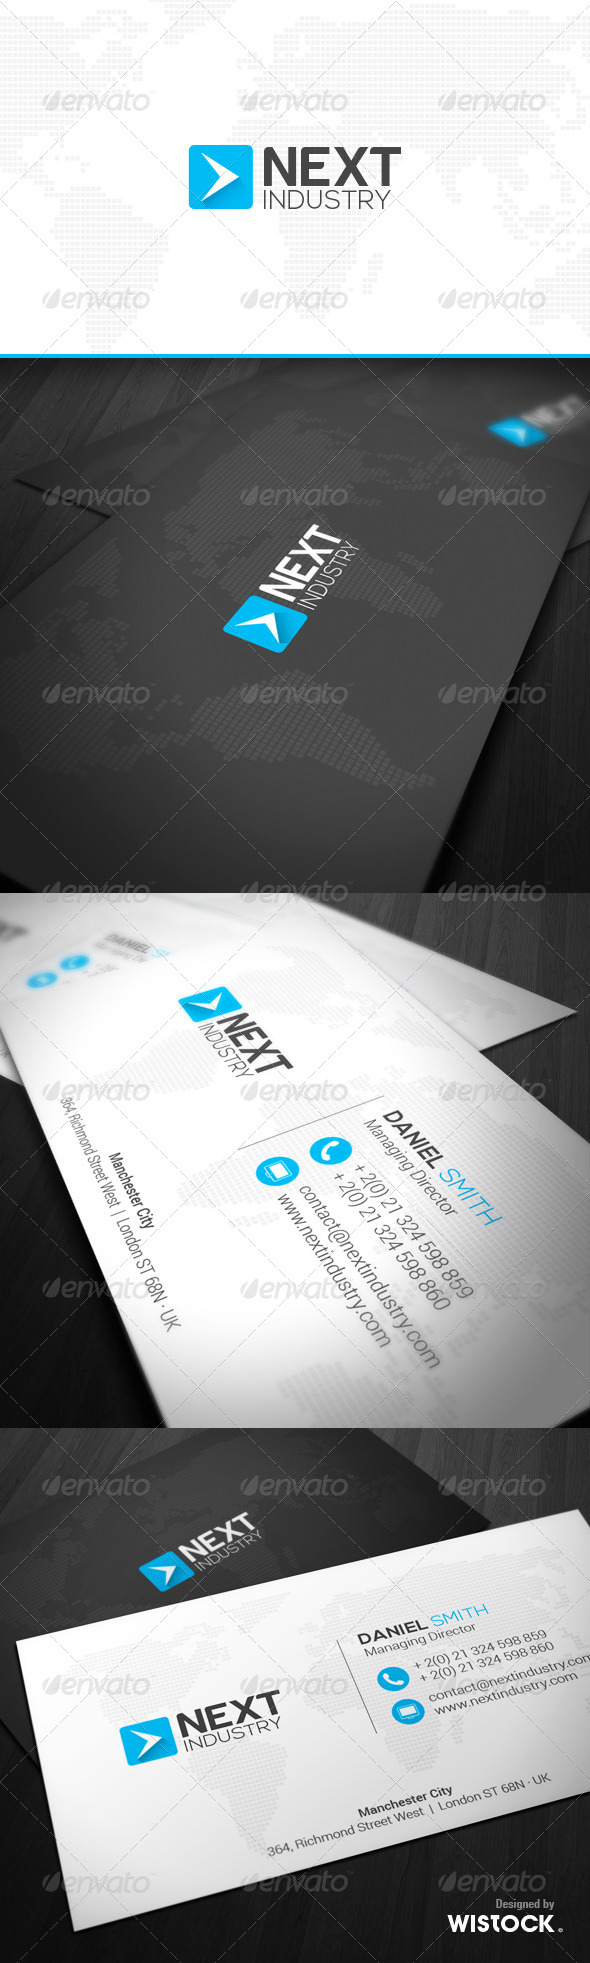 GraphicRiver Next Industry Business Card 7411700